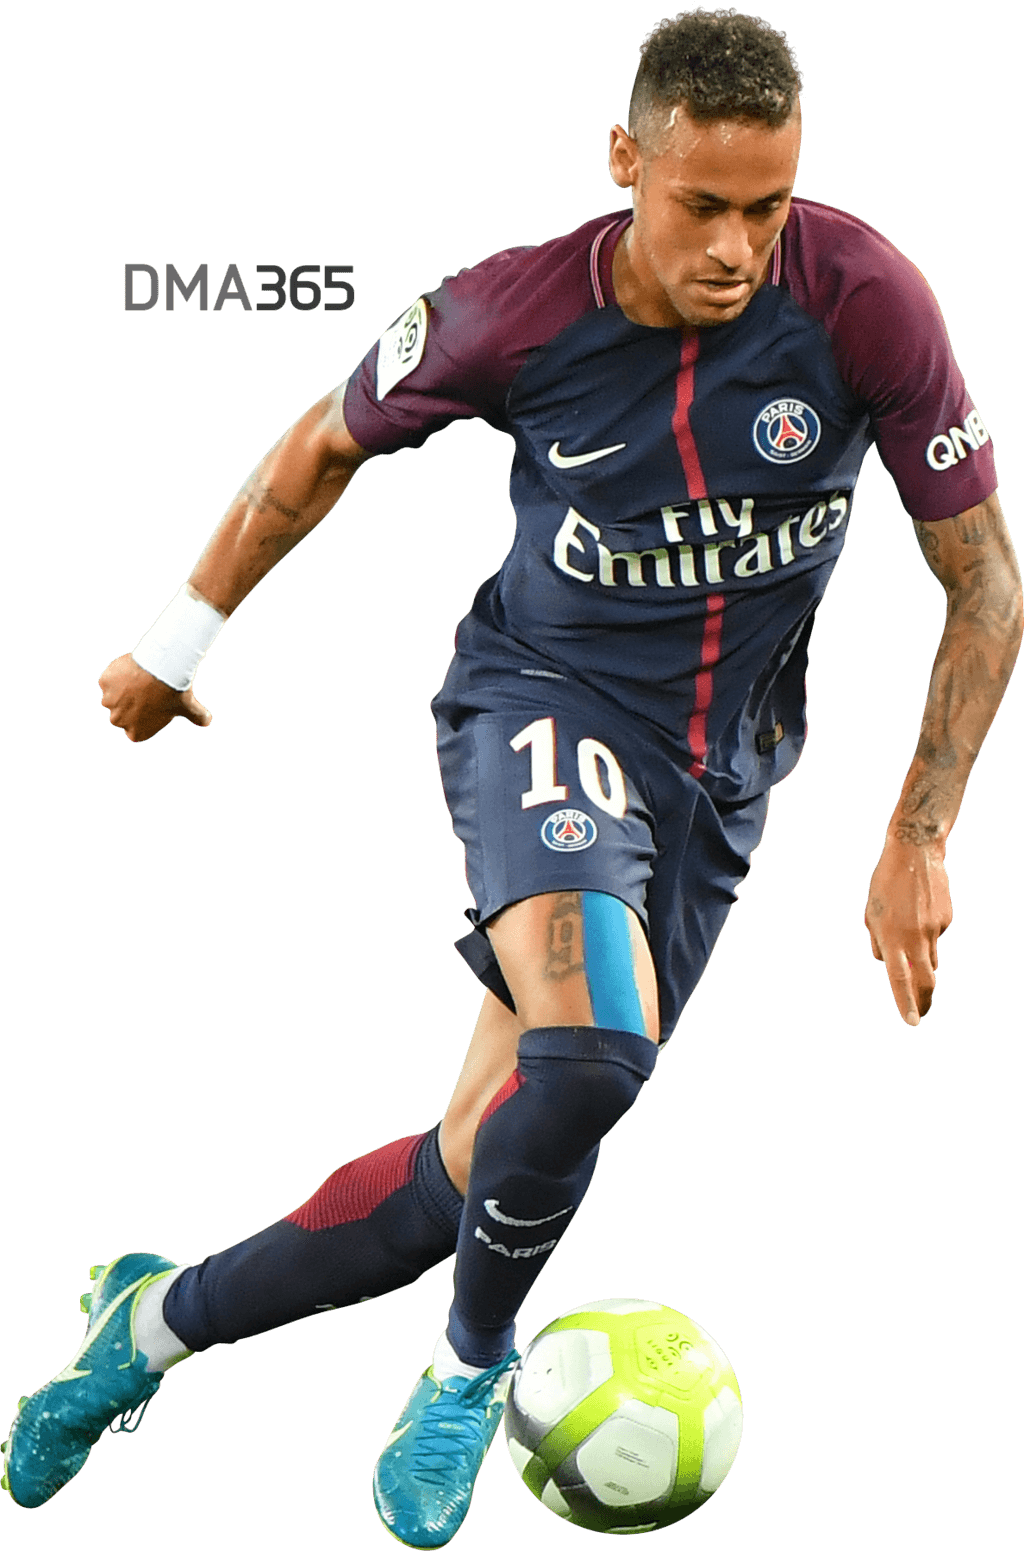 Neymar Png Psg 2018 By Dma365 Clipart Images Black and White.